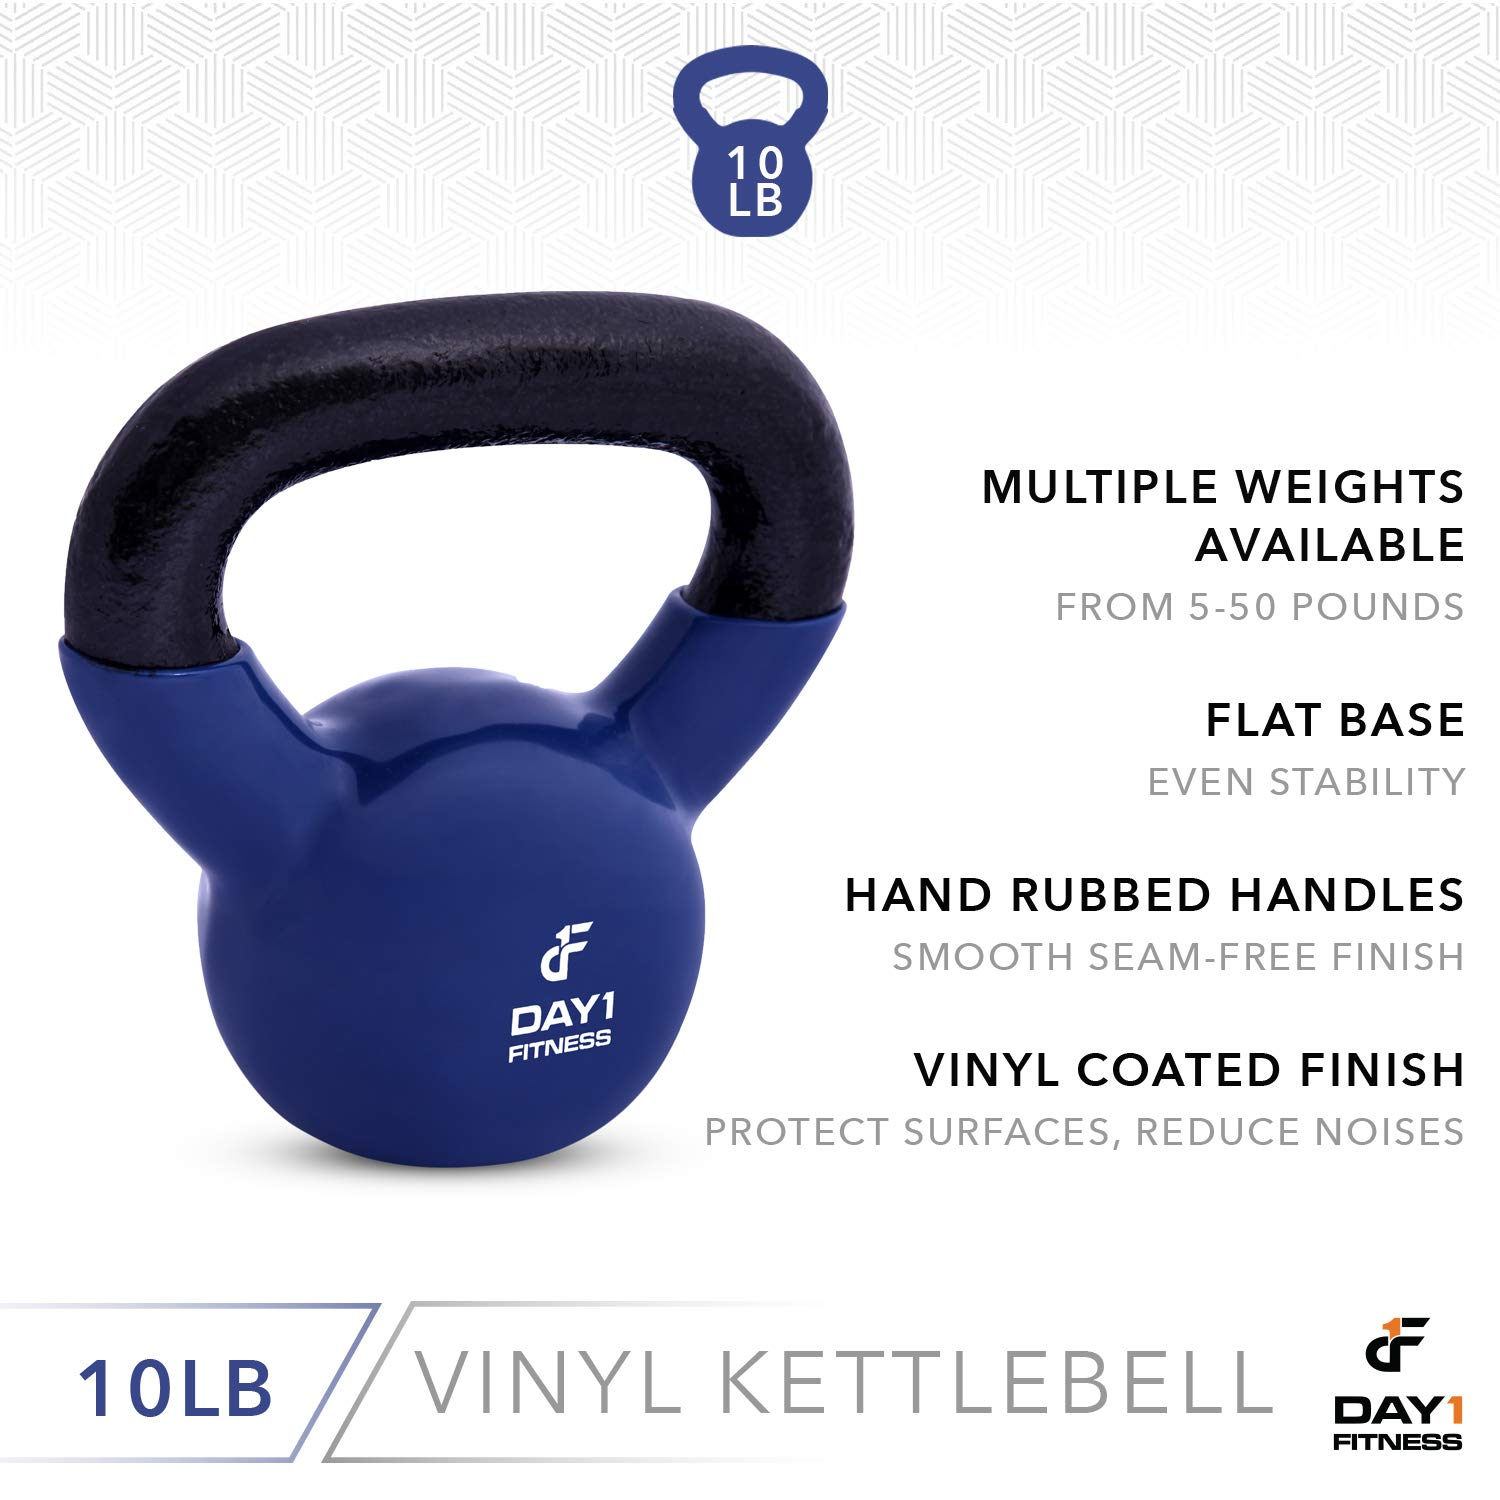 Day 1 Fitness Kettlebell Weights Vinyl Coated Iron 10 Pounds - Coated for Floor and Equipment Protection, Noise Reduction - Free Weights for Ballistic, Core, Weight Training by Day 1 Fitness (Image #4)